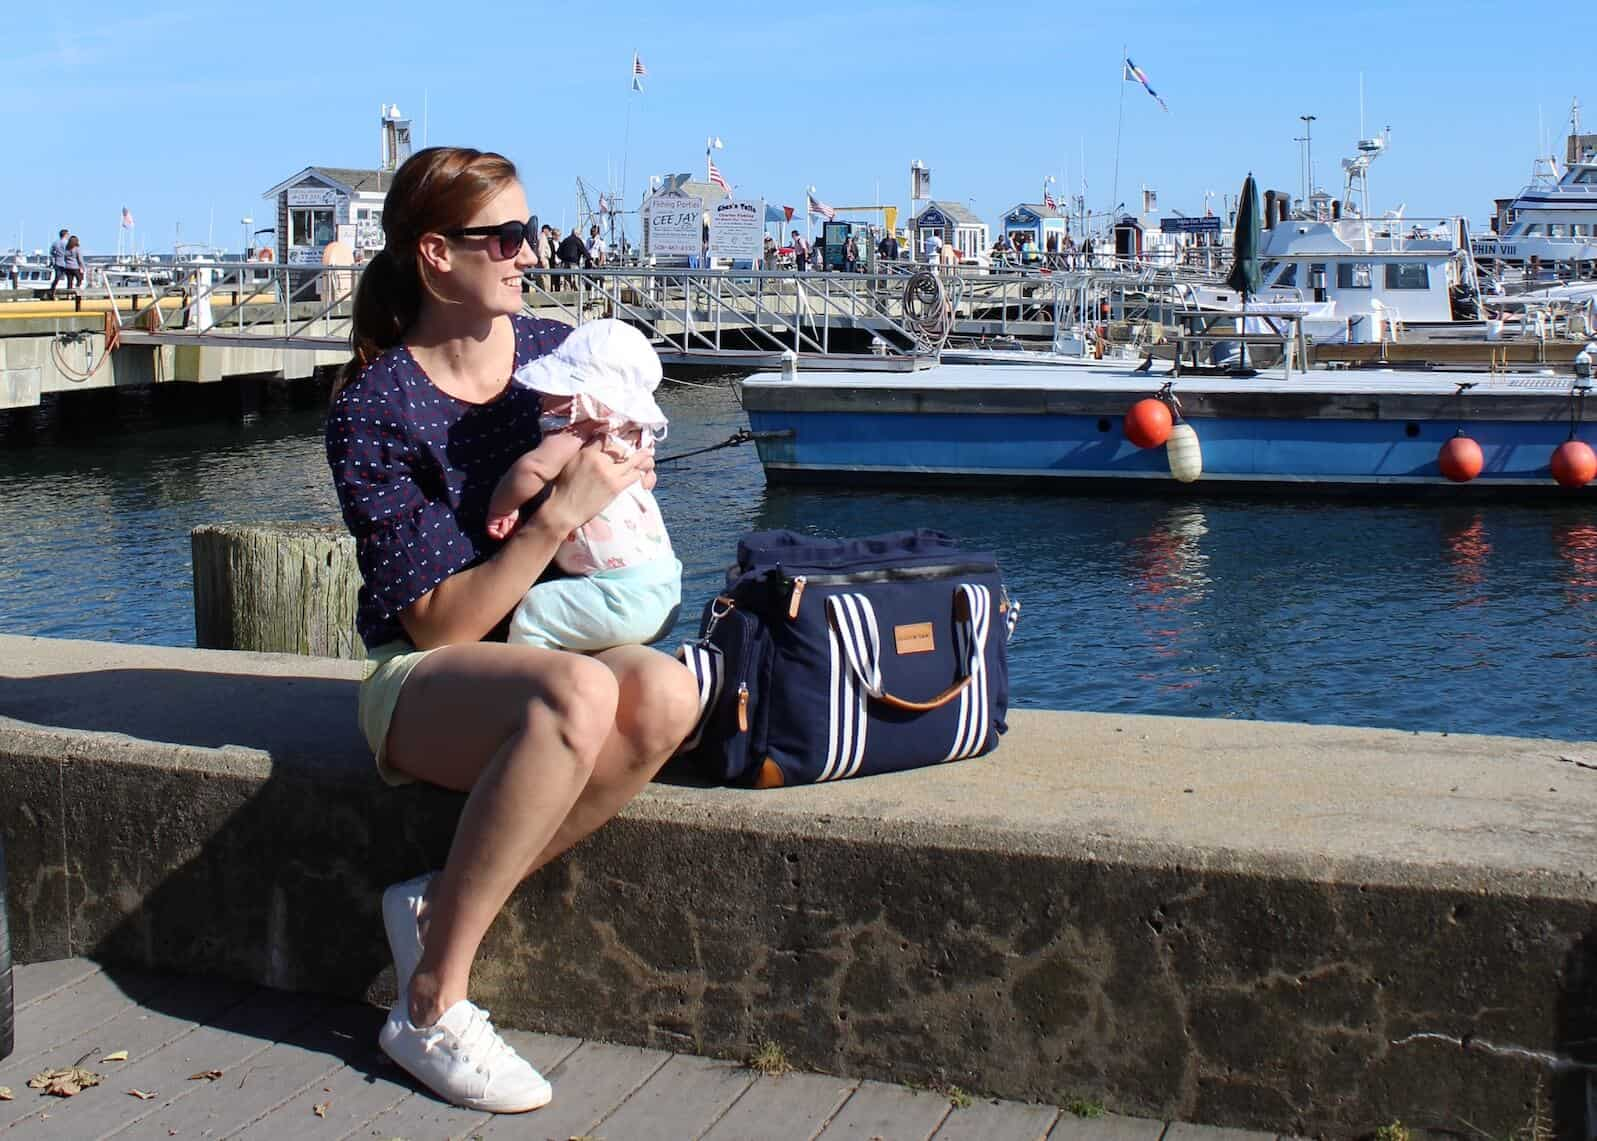 A Family Day Out in Provincetown, MA